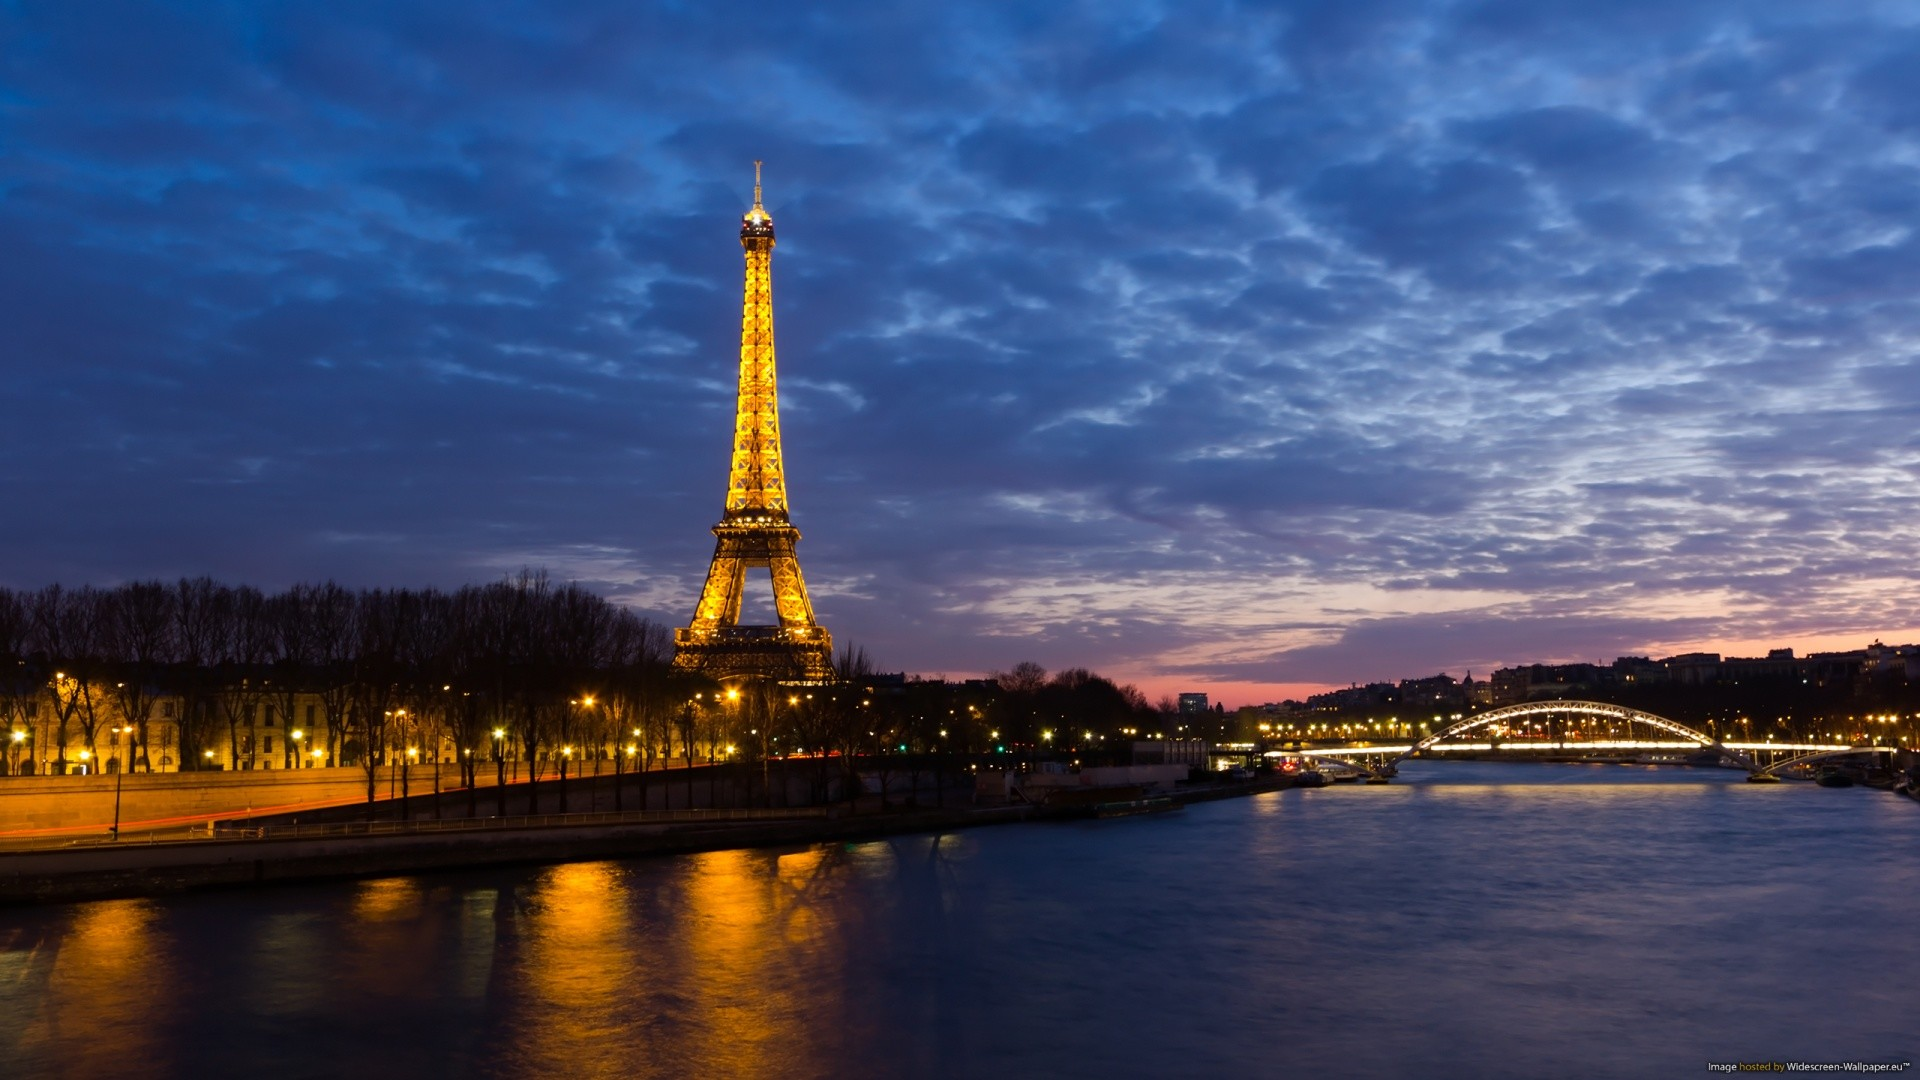 screensavers and wallpaper paris (67+ images)